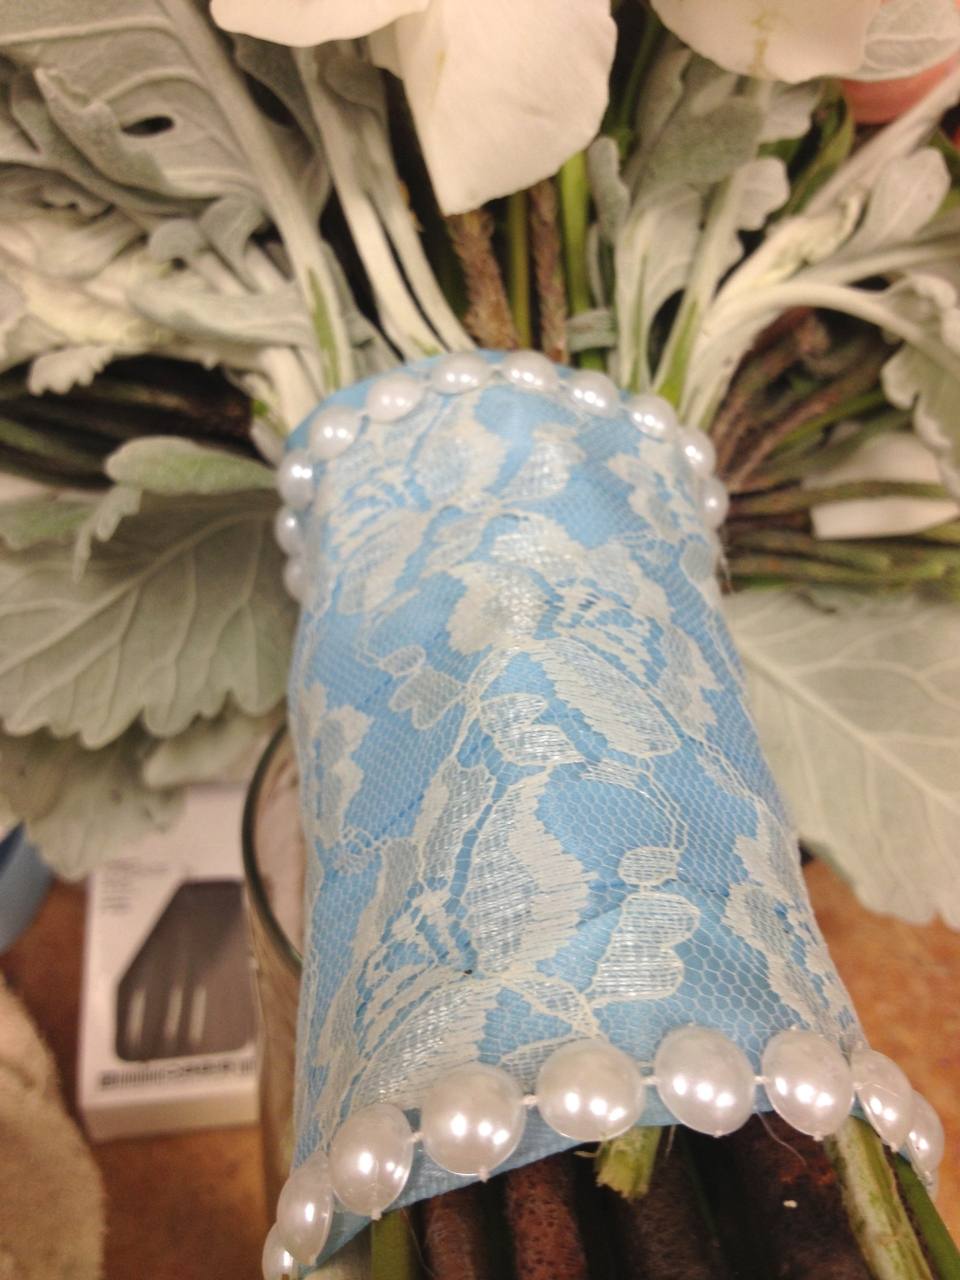 Ivory lace overlay over light blue satin trimmed with pearls for the bridal bouquet.